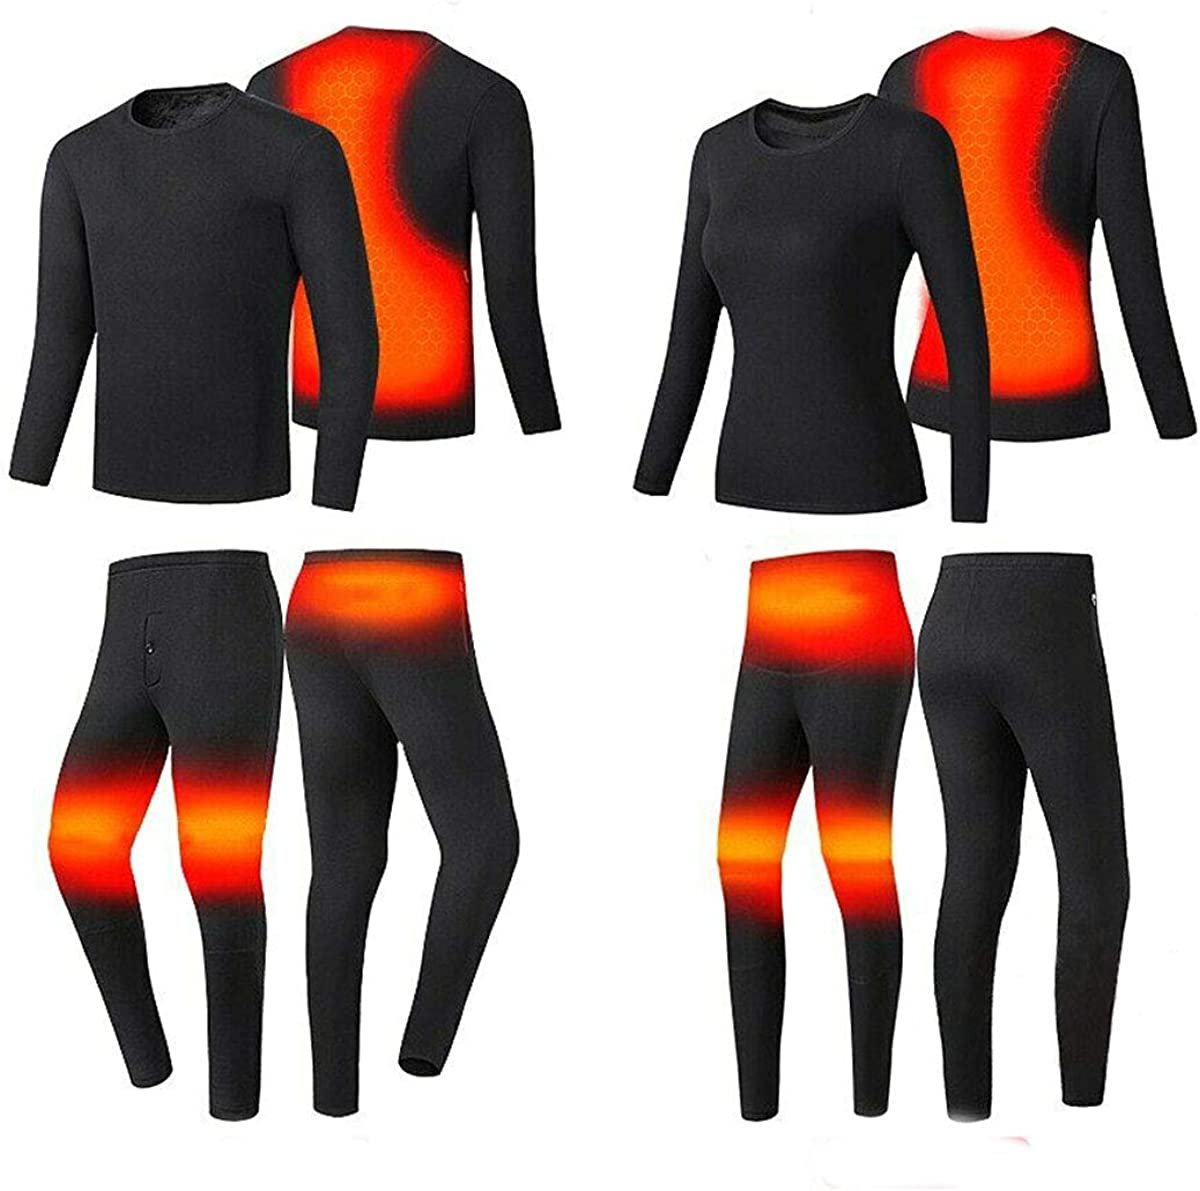 MYCHANNEL Heated Underwear Top + Heated Pant for Men & Women Insulated Washable USB ElectricThermal Long Sleeve Breathable